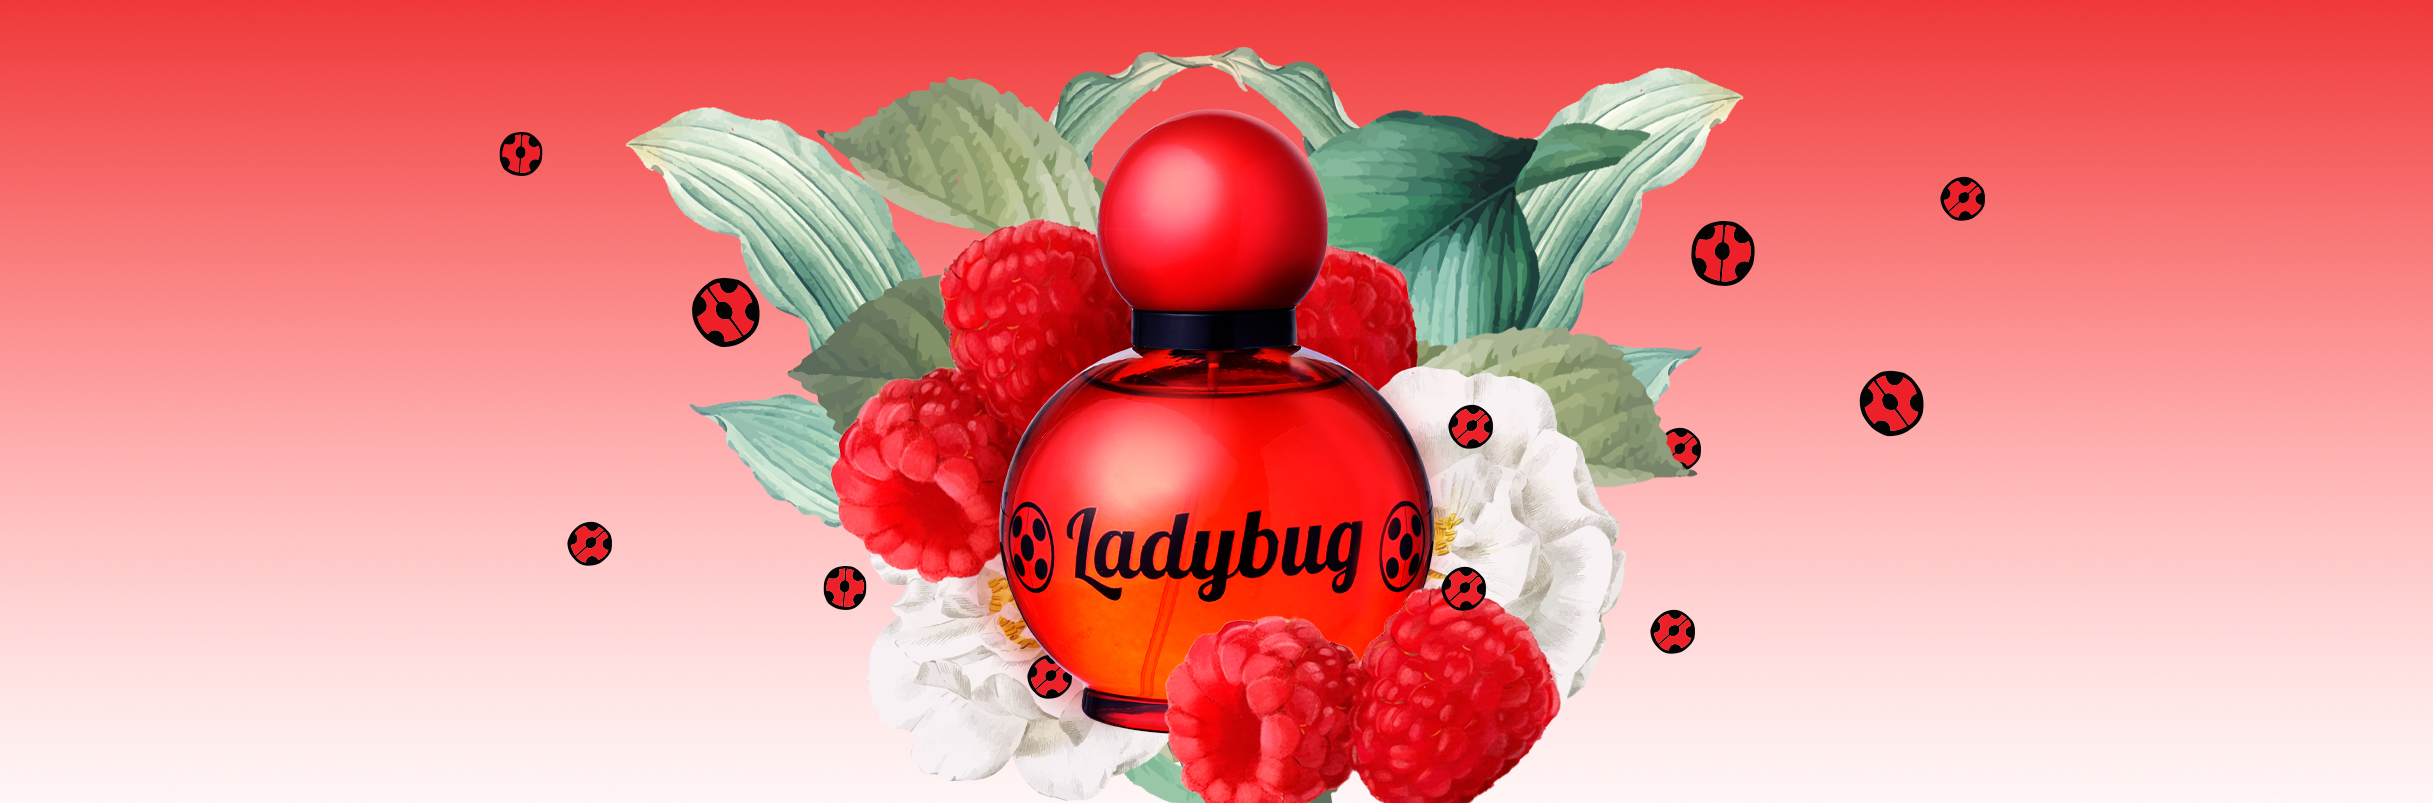 The Ladybug fragrances